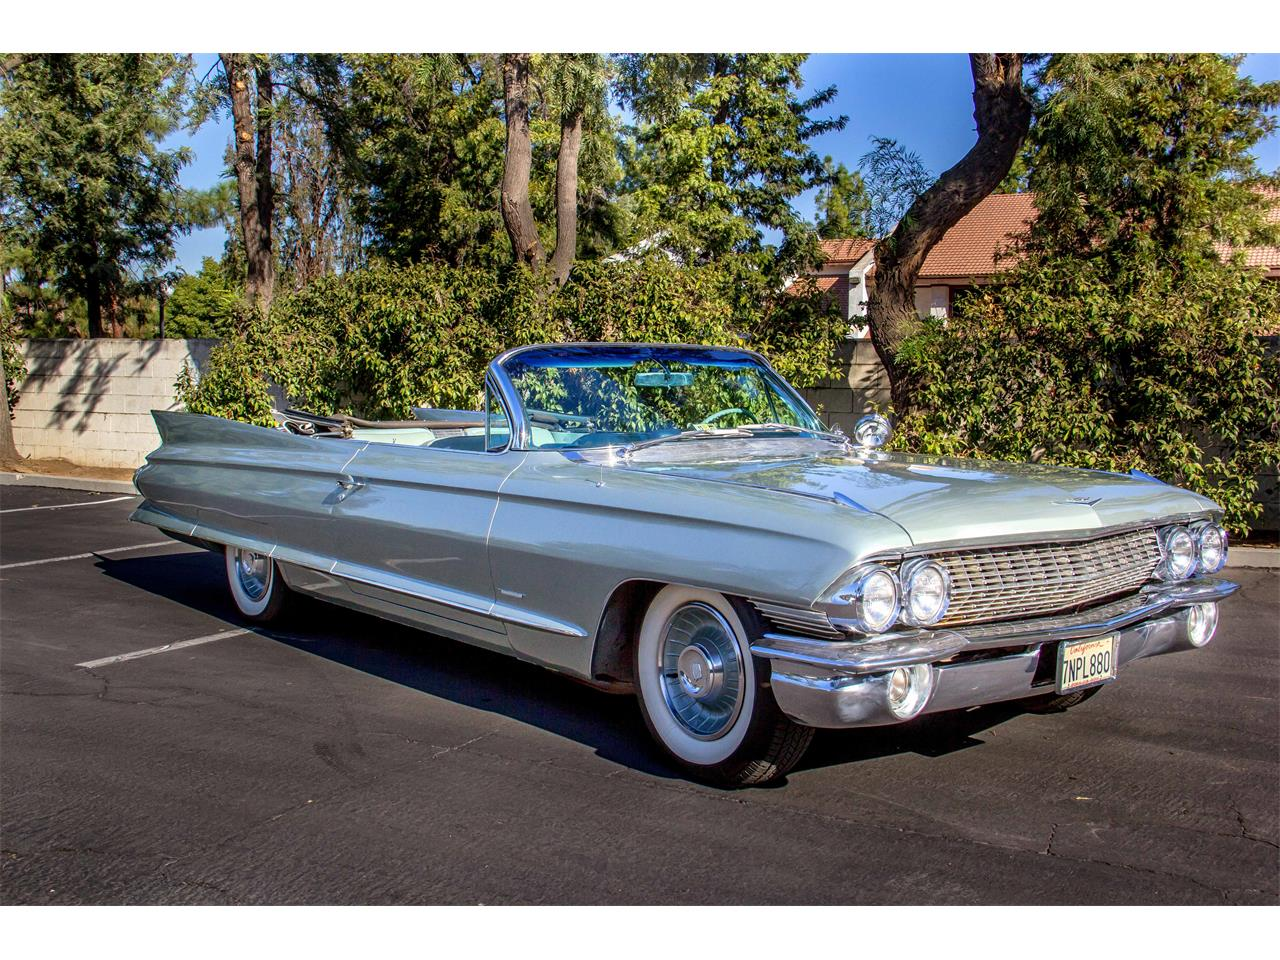 Large Picture of '61 DeVille located in San Francisco California - $55,500.00 Offered by a Private Seller - K2GI